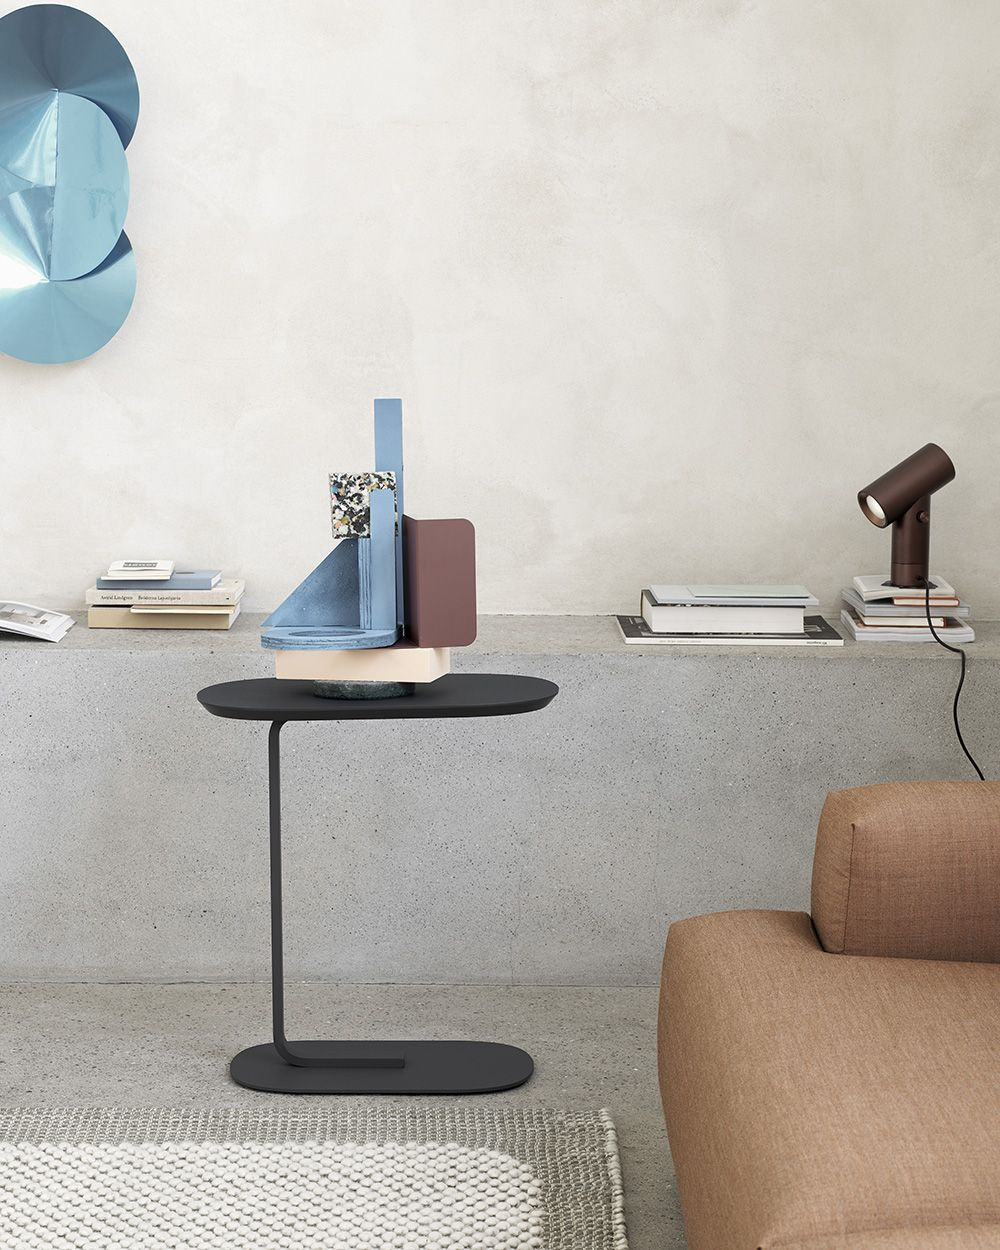 Timeless And Functional Scandinavian Storage Inspiration From Muuto An Elegant Side Table With Two Planes Connected Through A Graphic Leg For A Modern Express